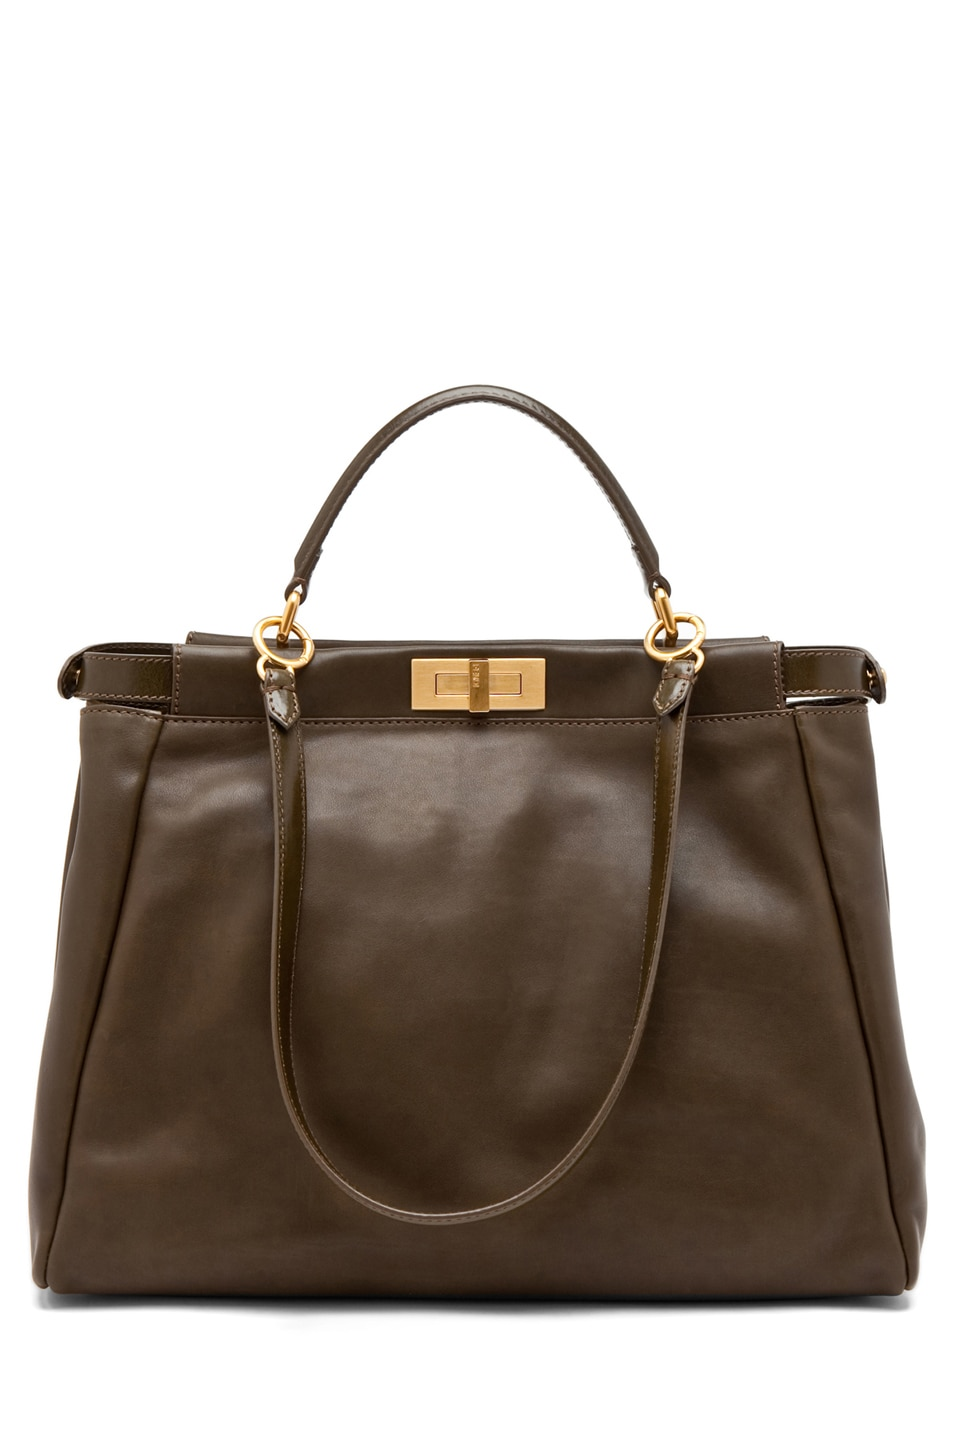 Image 1 of Fendi Peekaboo Handbag in Olive